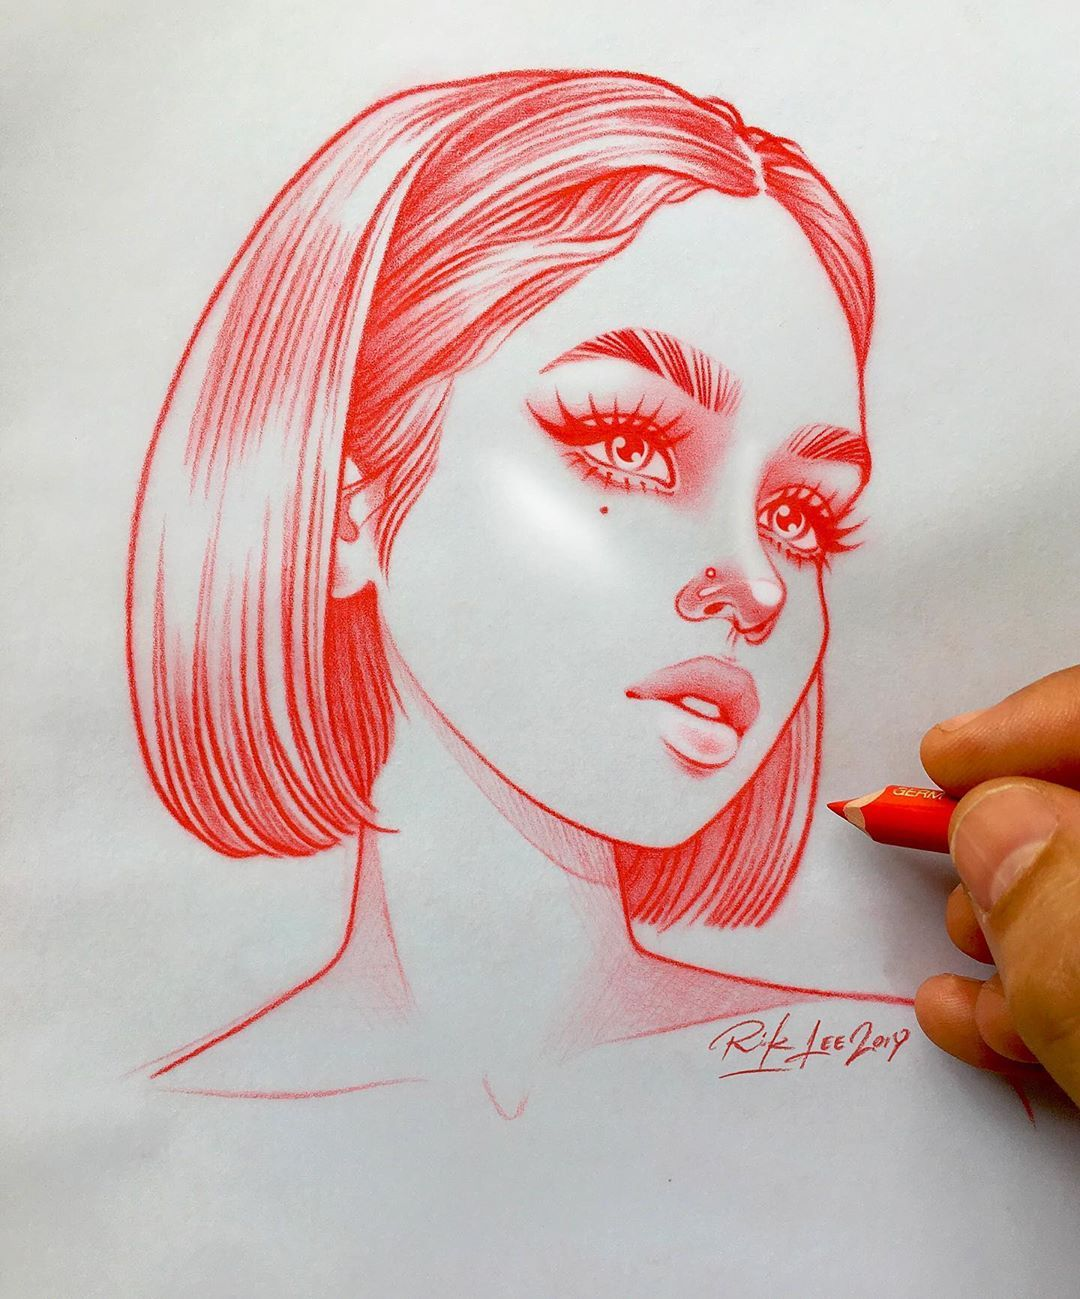 Rik Lee On Instagram There S Something I Find Really Satisfying About That Scratchy Sound Of Pencil On Pa Art Sketches Drawing Sketches Art Drawings Sketches